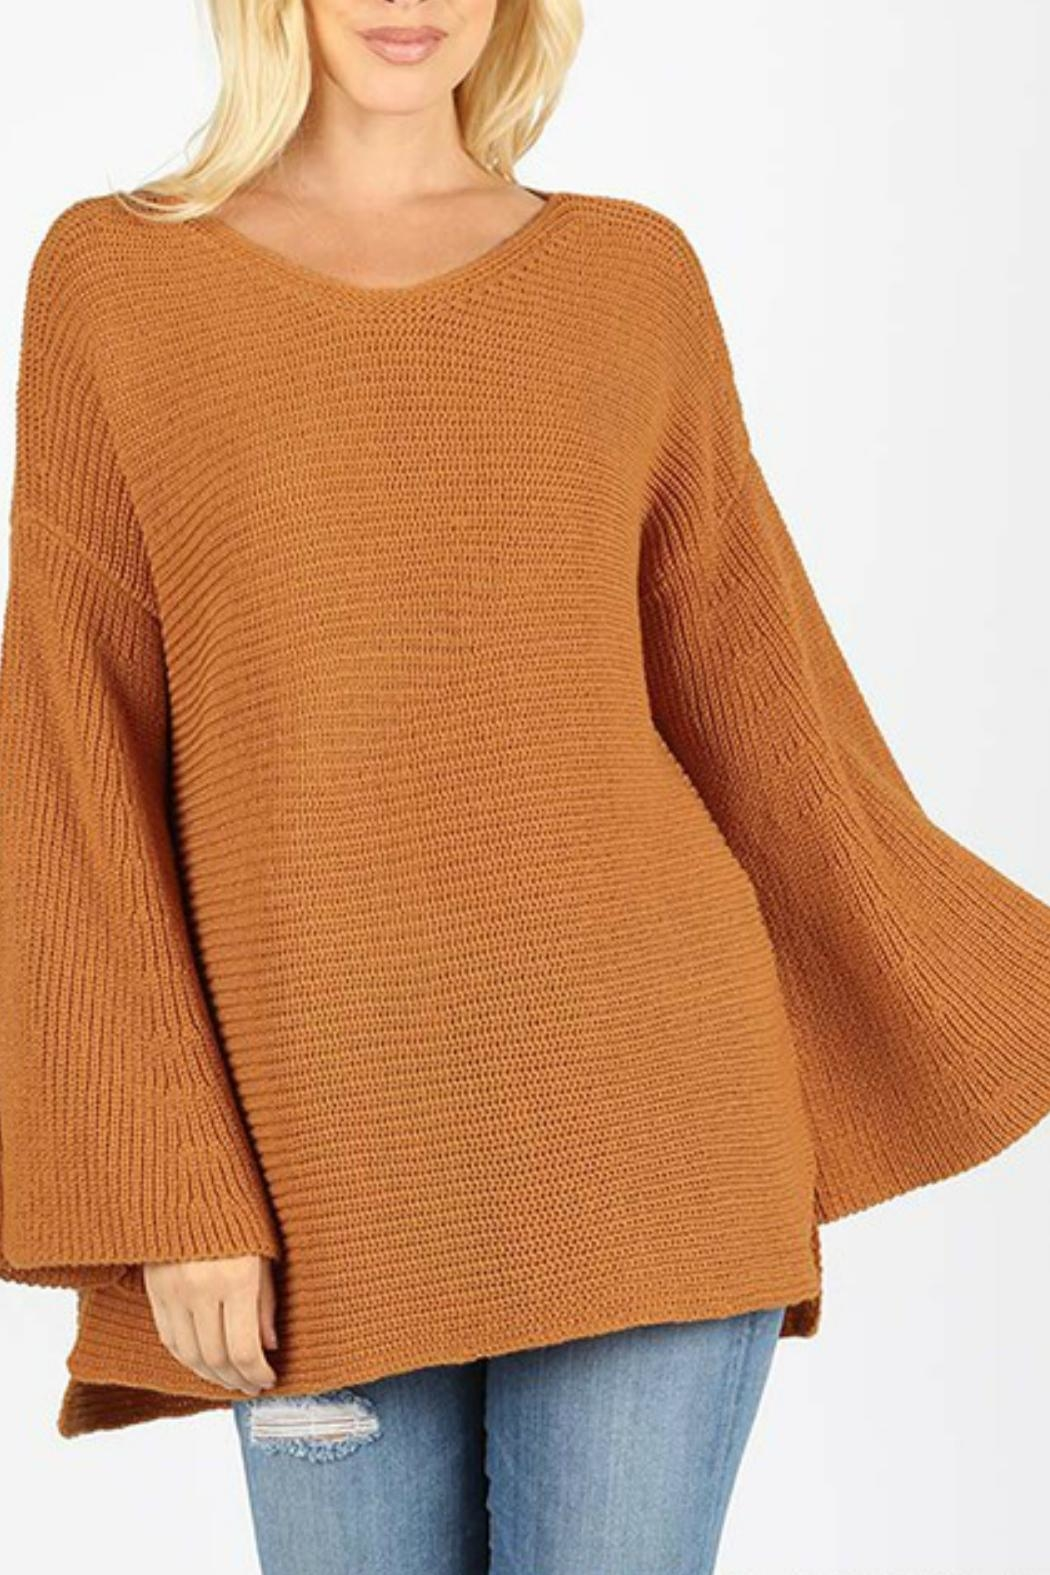 Zenana Outfitters Bell Sleeve Sweater - Main Image